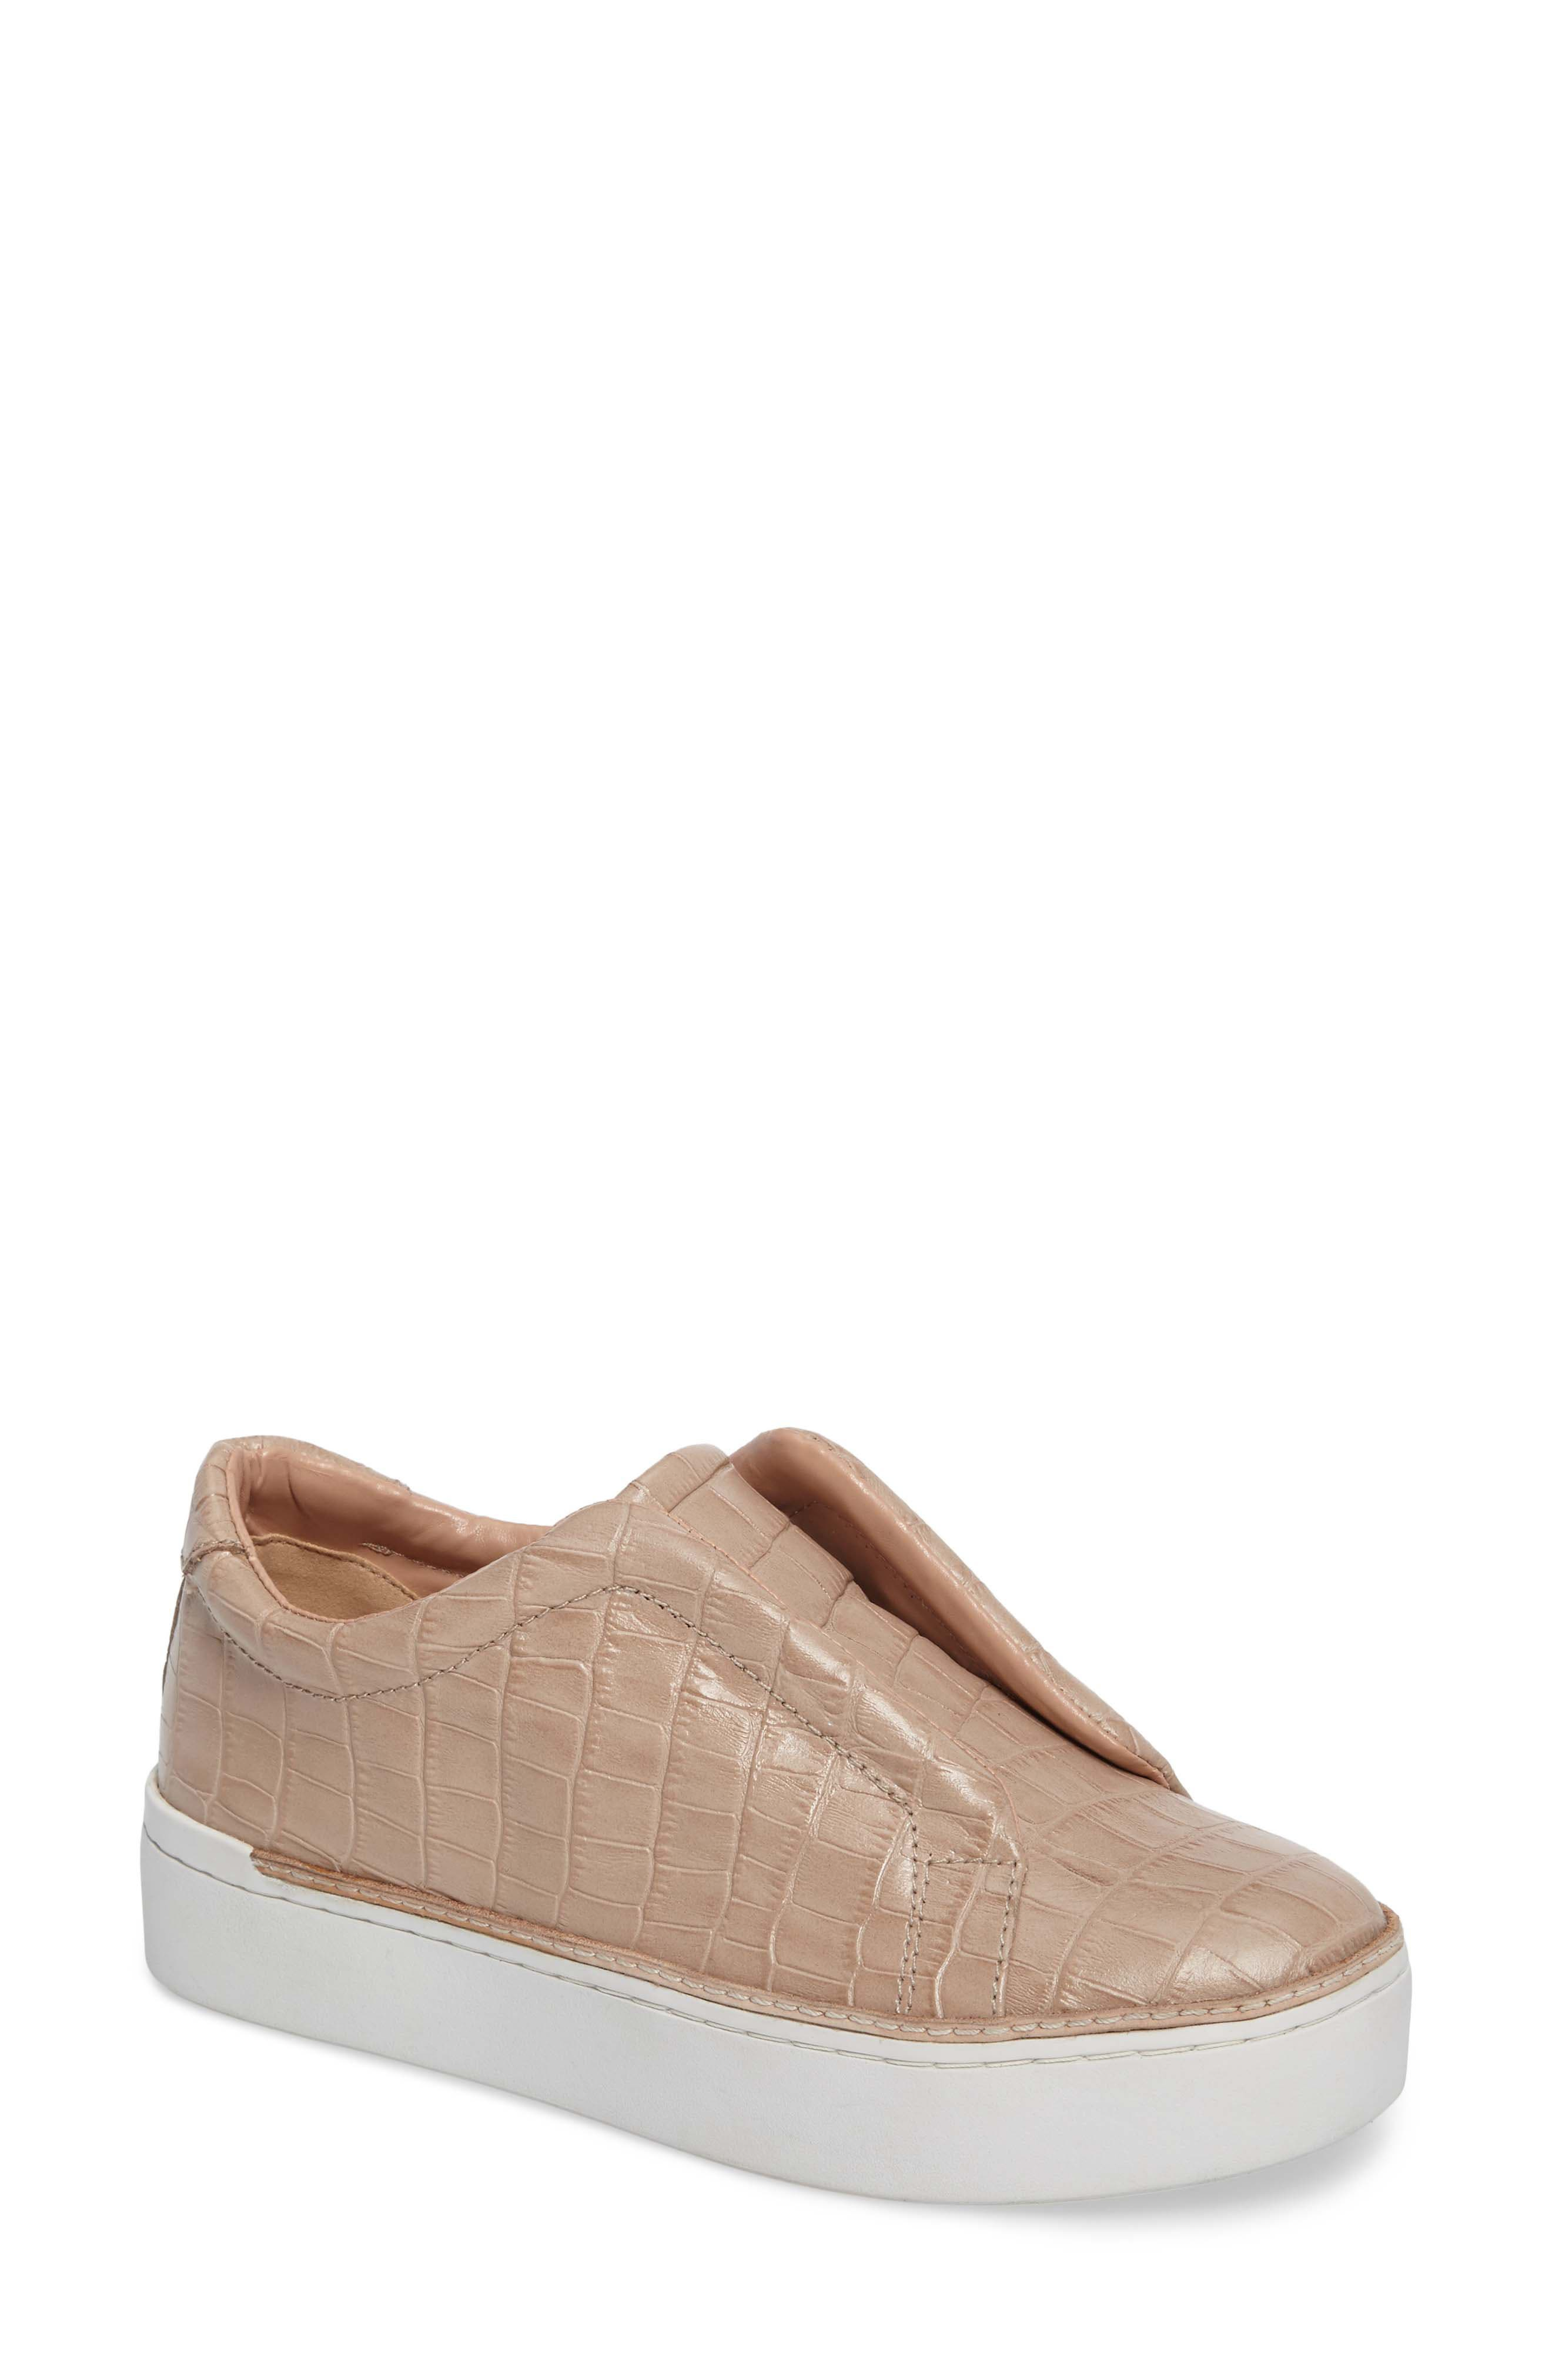 Alternate Image 1 Selected - M4D3 Super Slip-On Sneaker (Women)